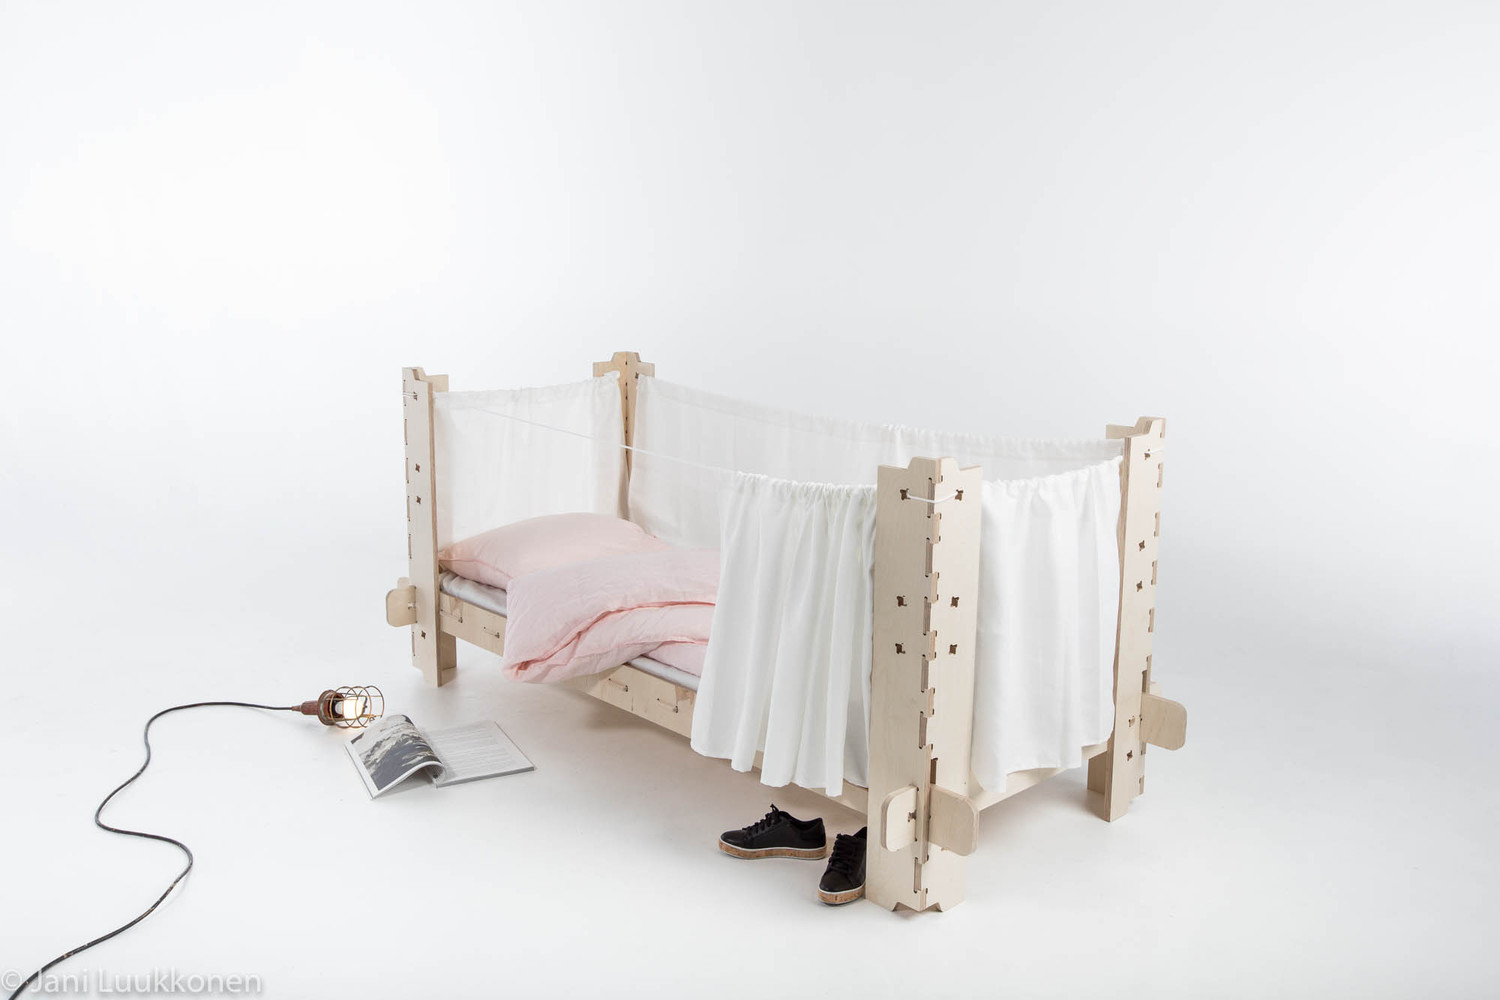 Students Design Temporary Furniture for Victims of Displacement, Jani  Luukkonen